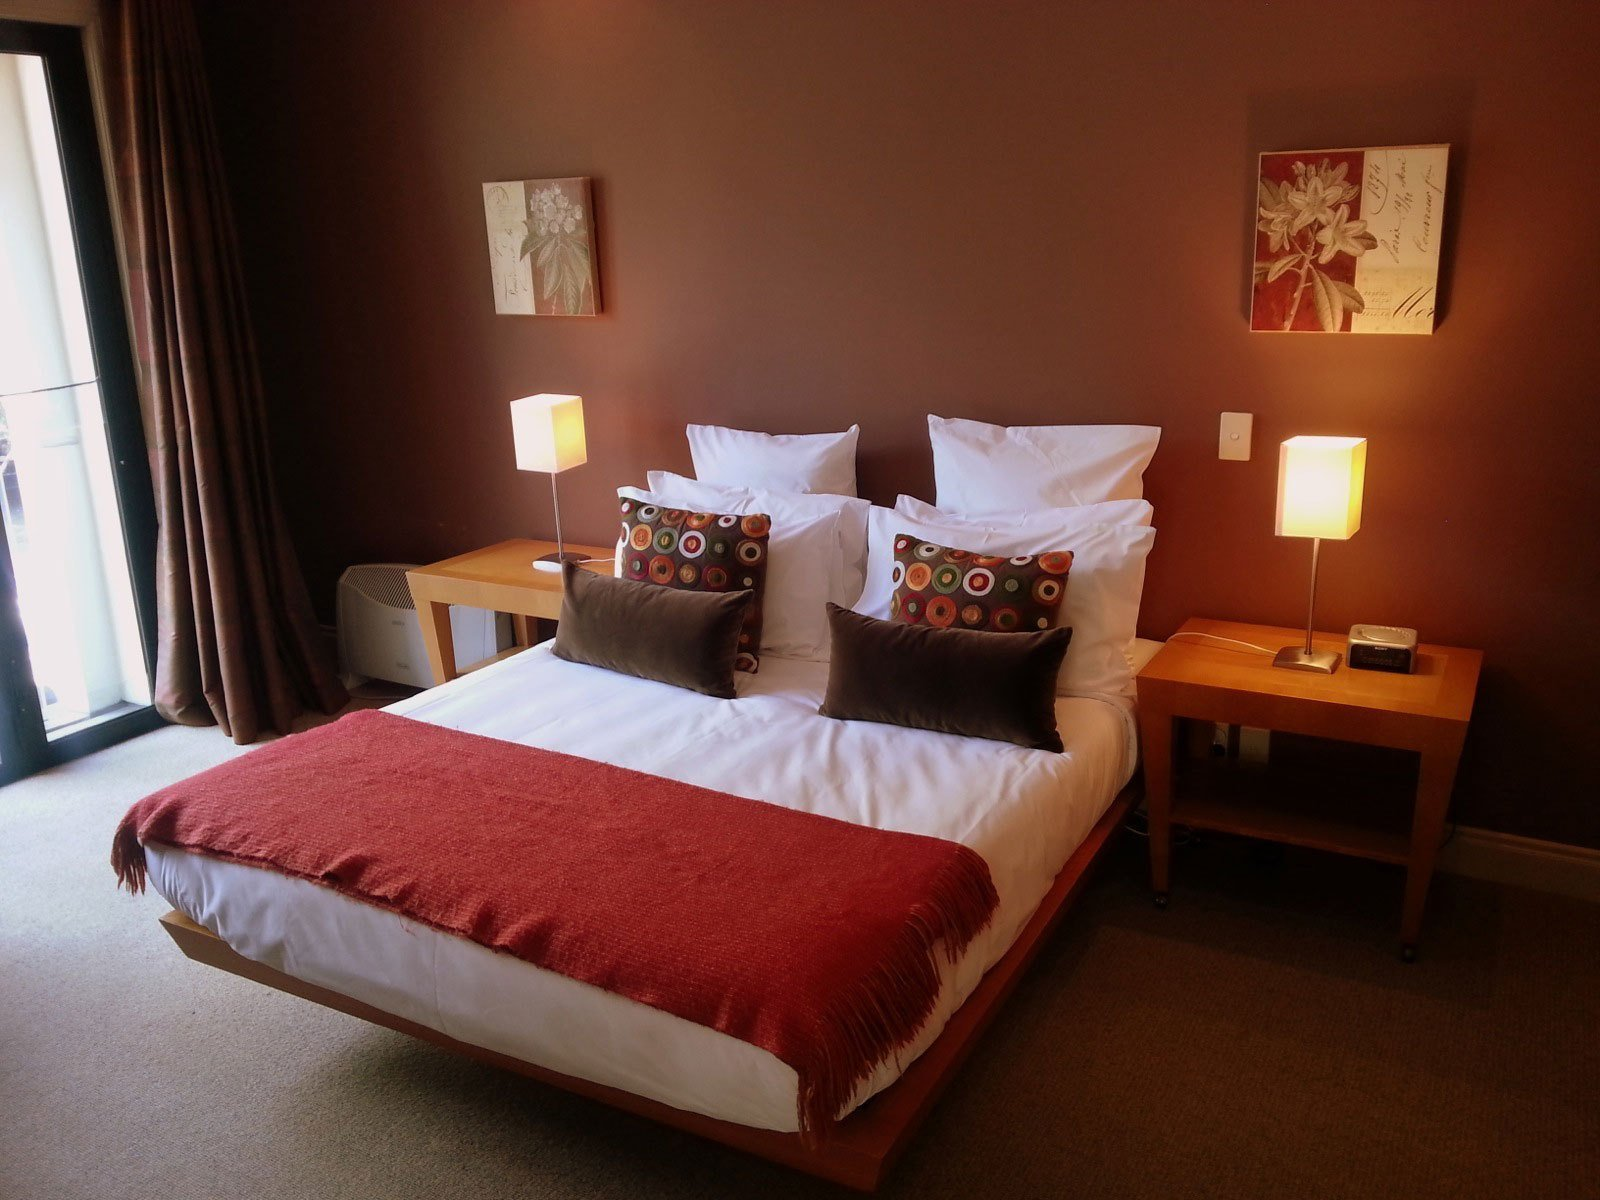 Best 1 Bedroom Study Serviced Apartment In Auckland Latitude 37 With Pictures Original 1024 x 768